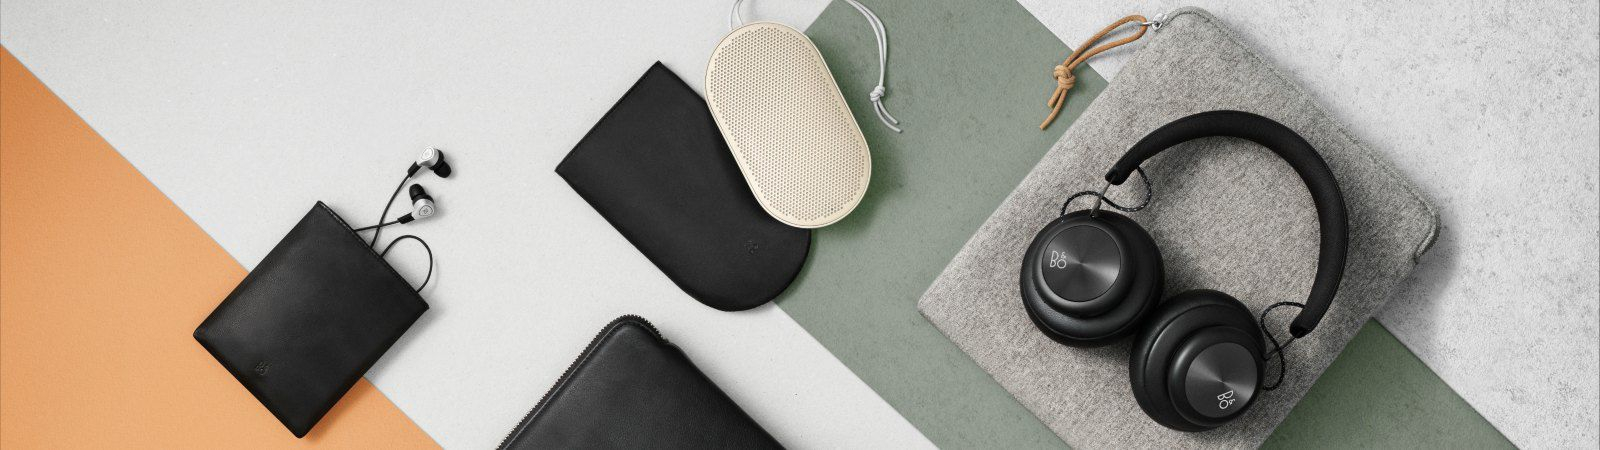 Find the Perfect Gift for the Musician and Techy in Your Life